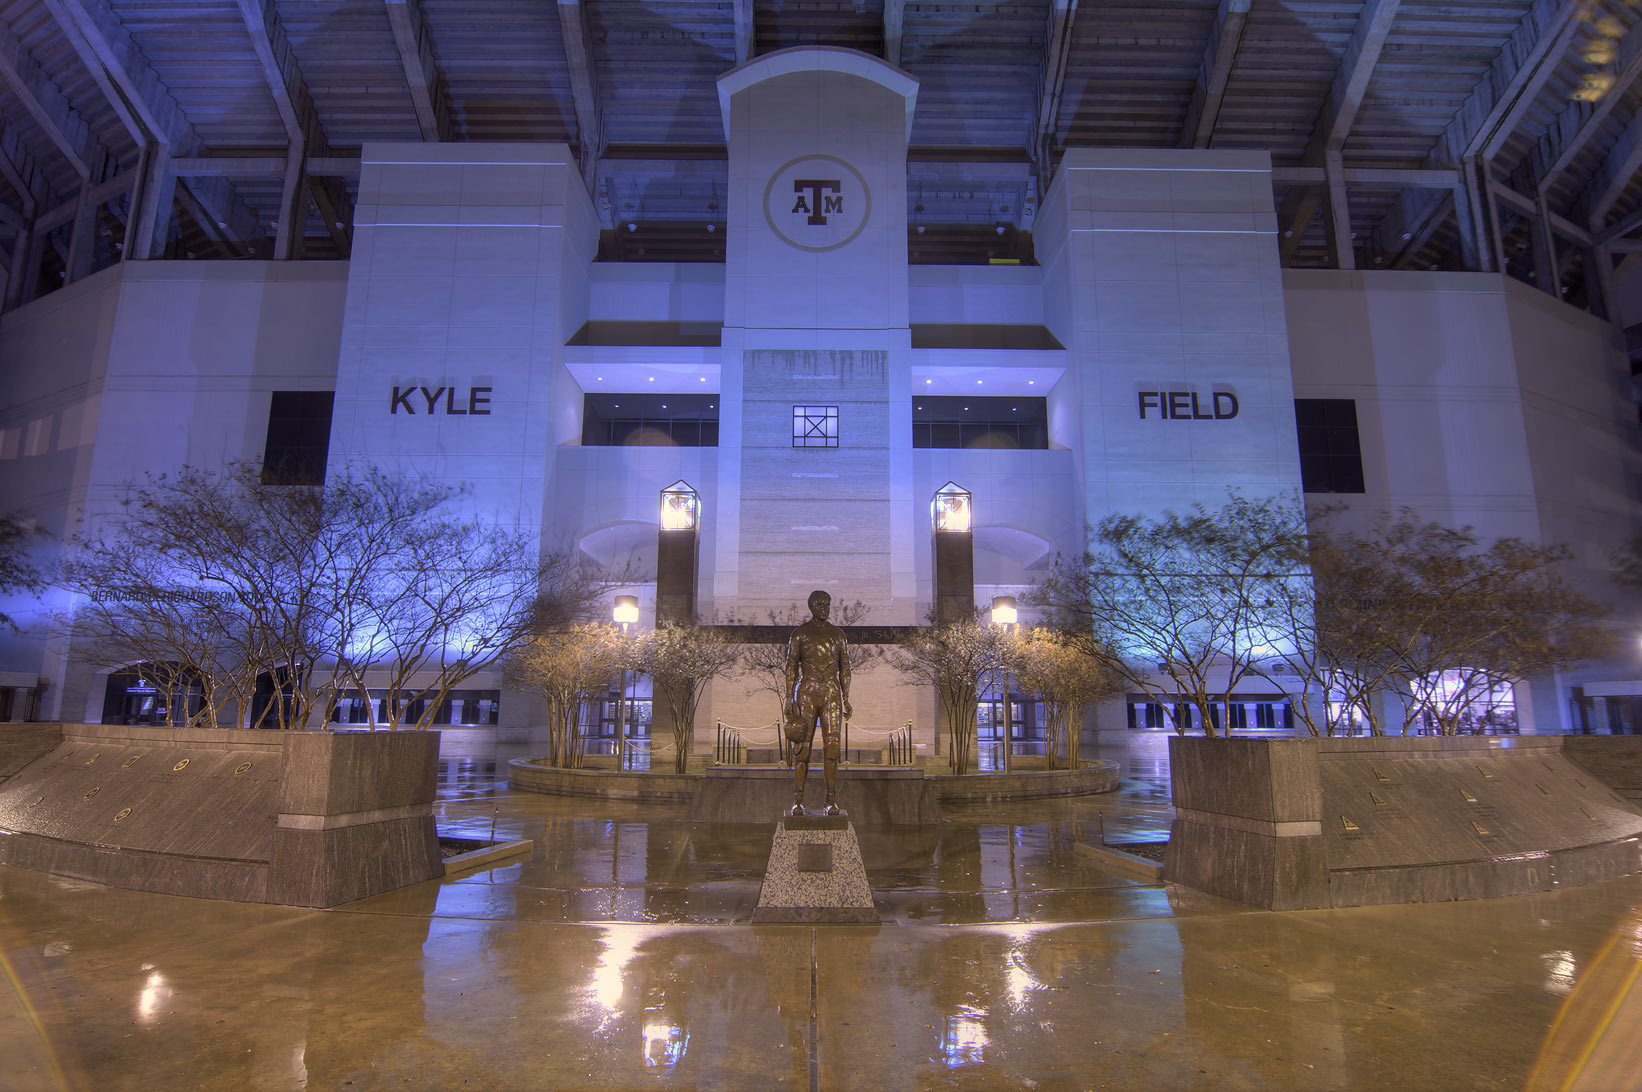 Kyle Field stadium on campus of Texas A&M University. College Station, Texas